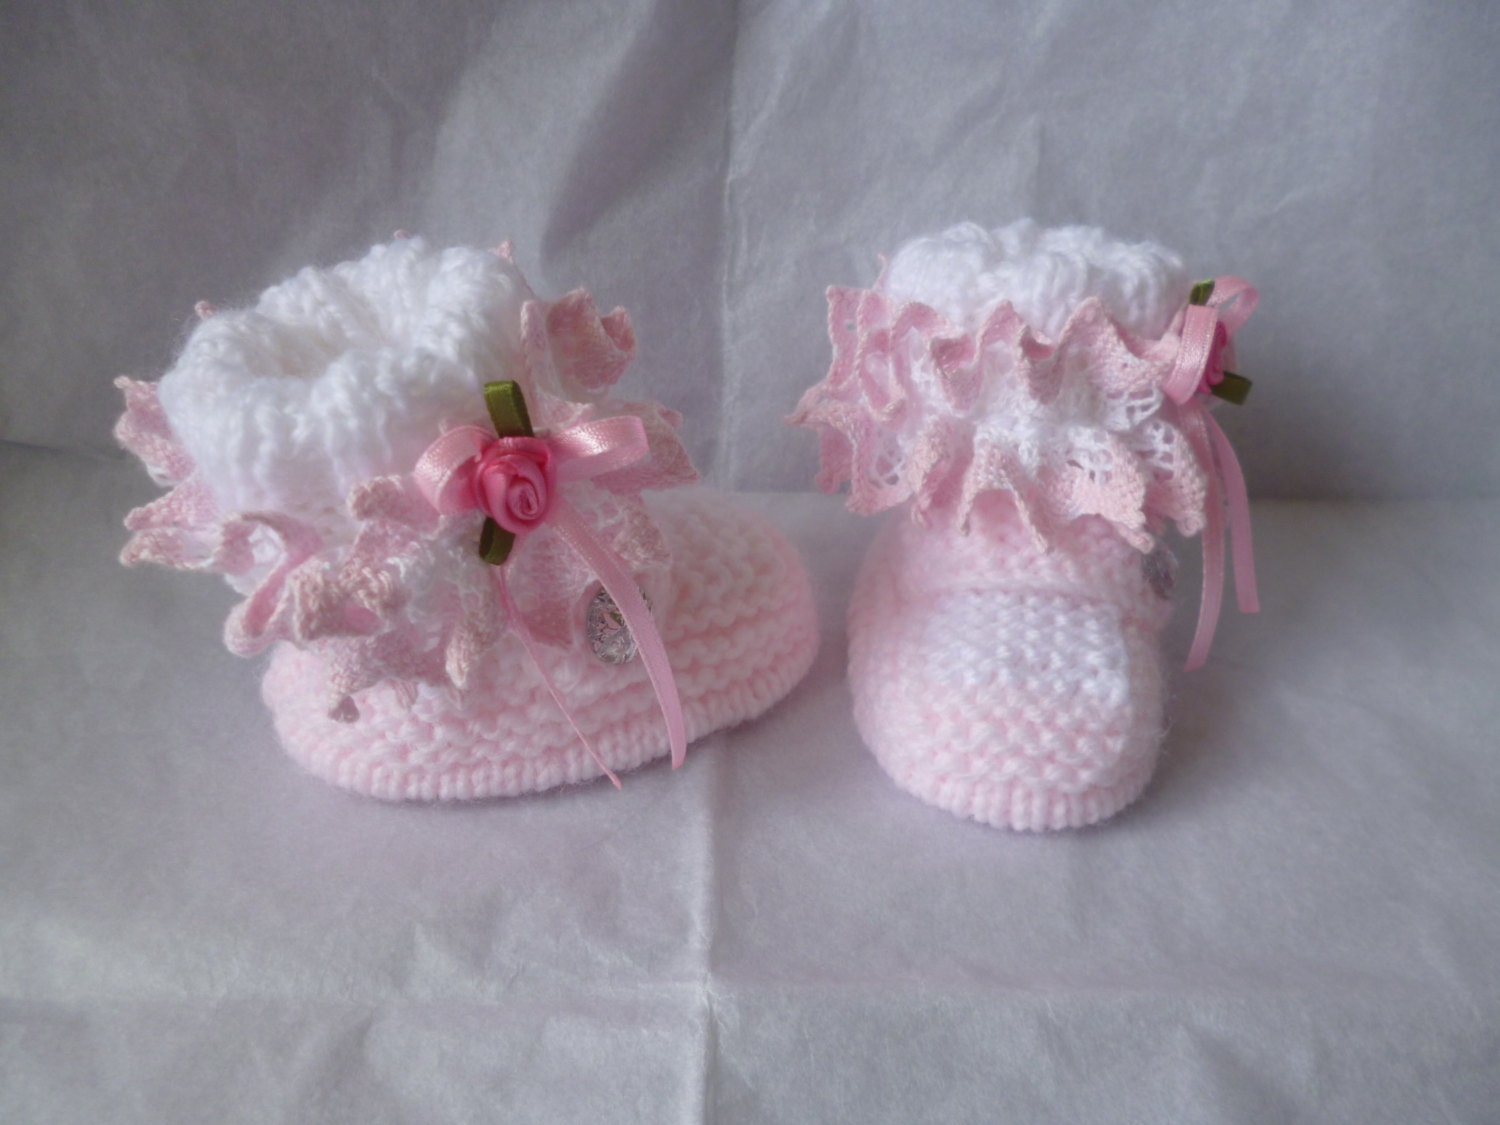 knitting pattern no 3 INSTANT DOWNLOAD for baby girls bootiesshoesbooteespram shoes.to knit in size 03 months.